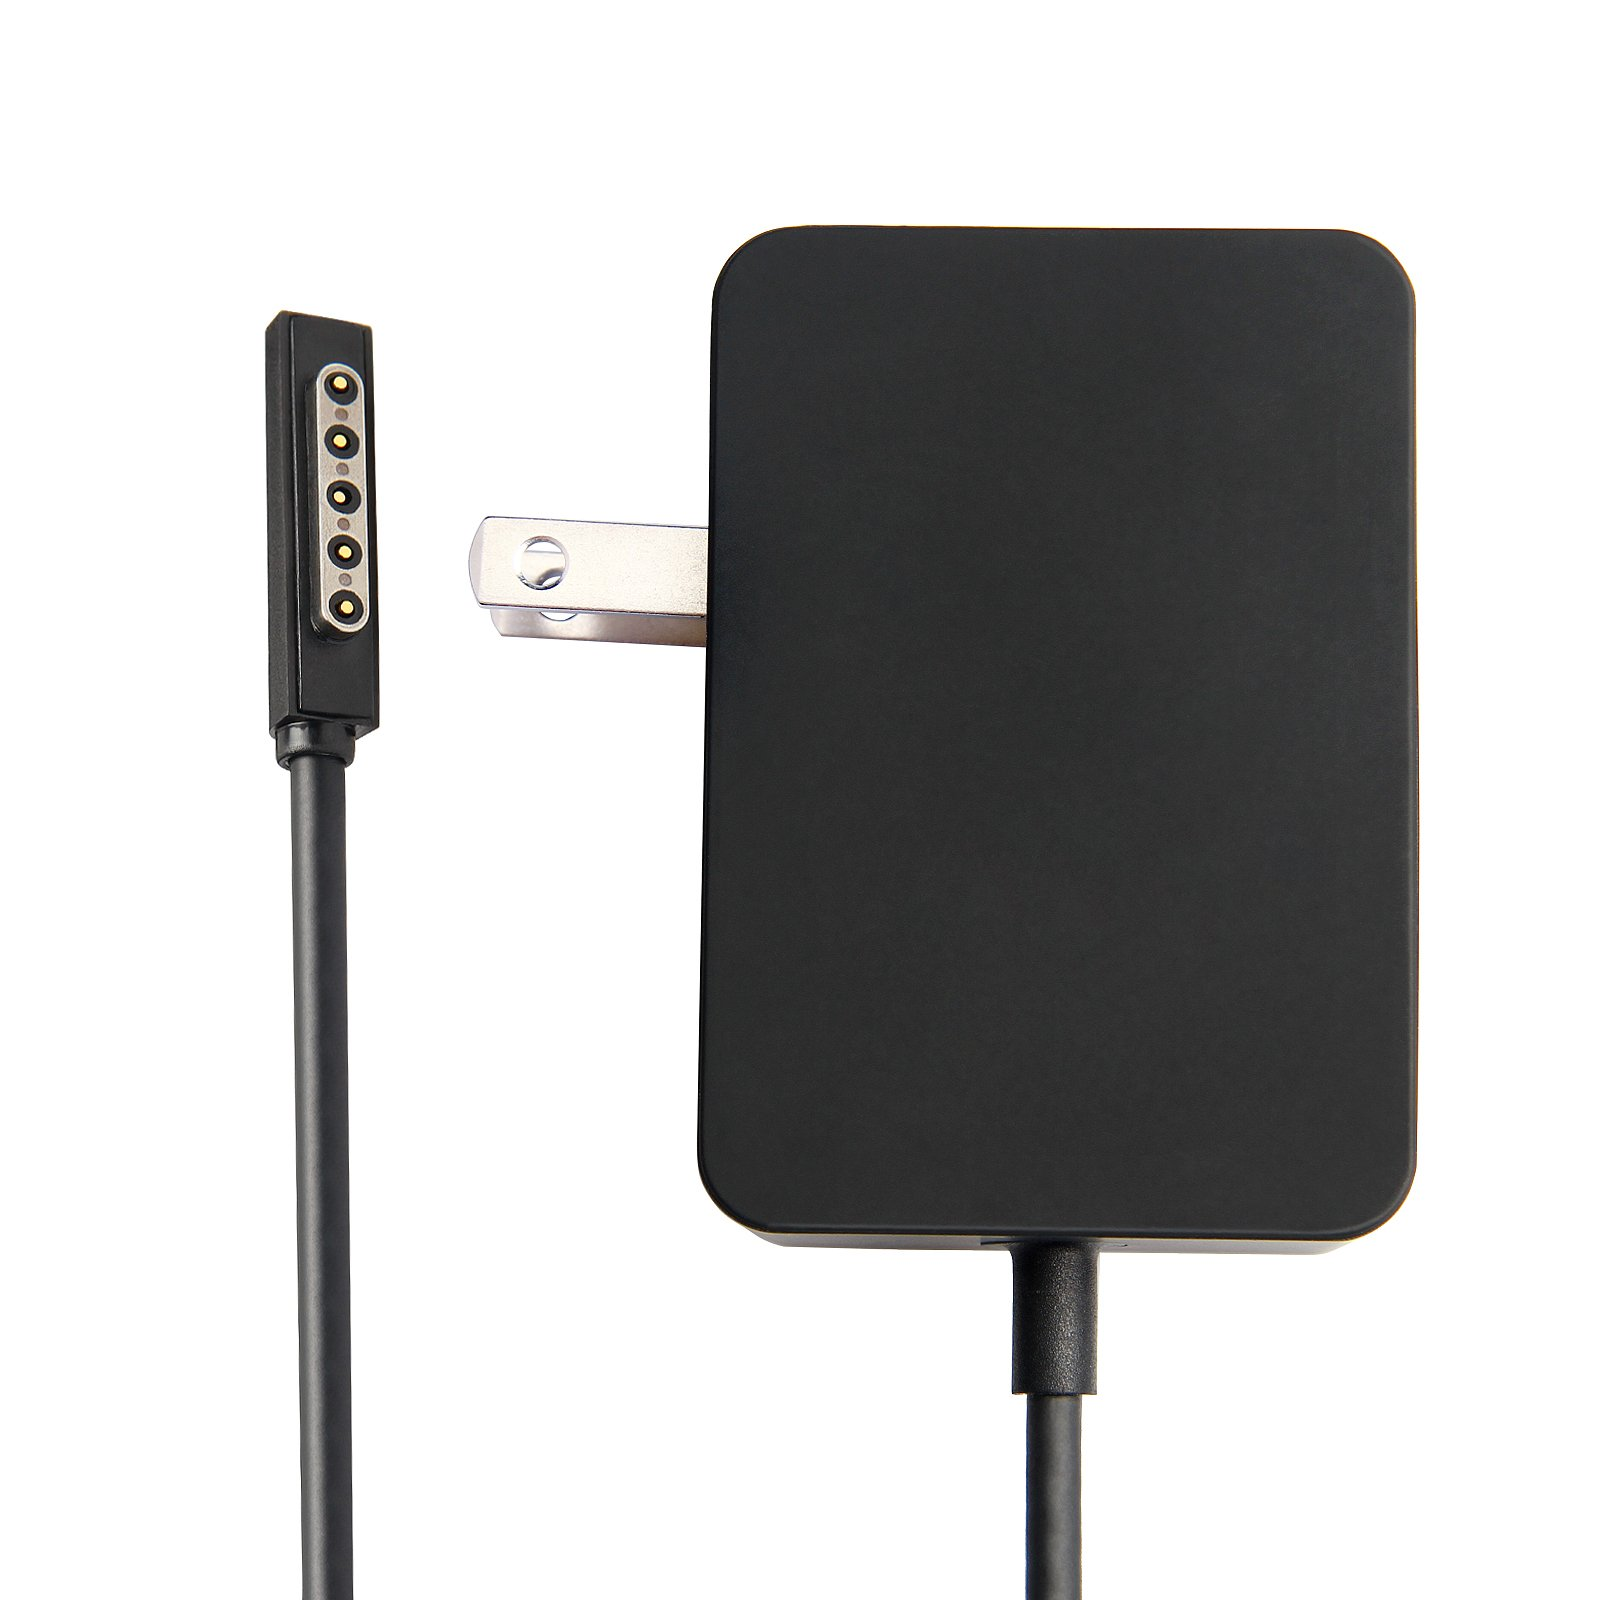 24W AC Adapter Charger for Microsoft Surface RT,Surface 2 10.6 inch 1512 Tablet,Surface Pro 1 2 + Power Cord